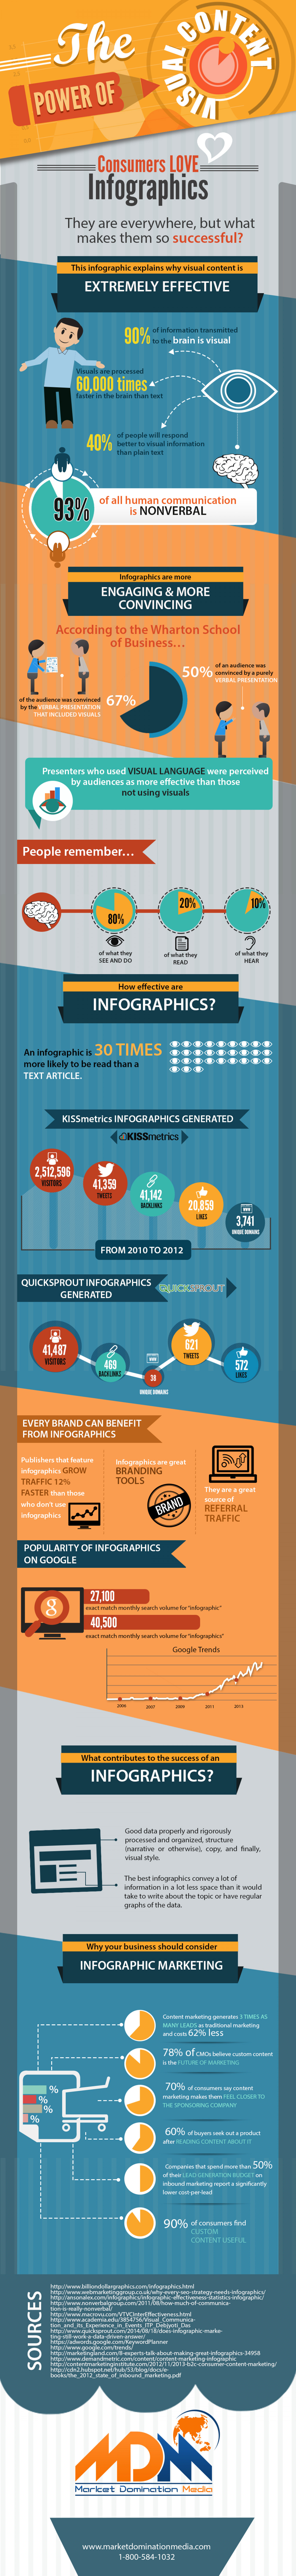 Power of Visual Content Infographic